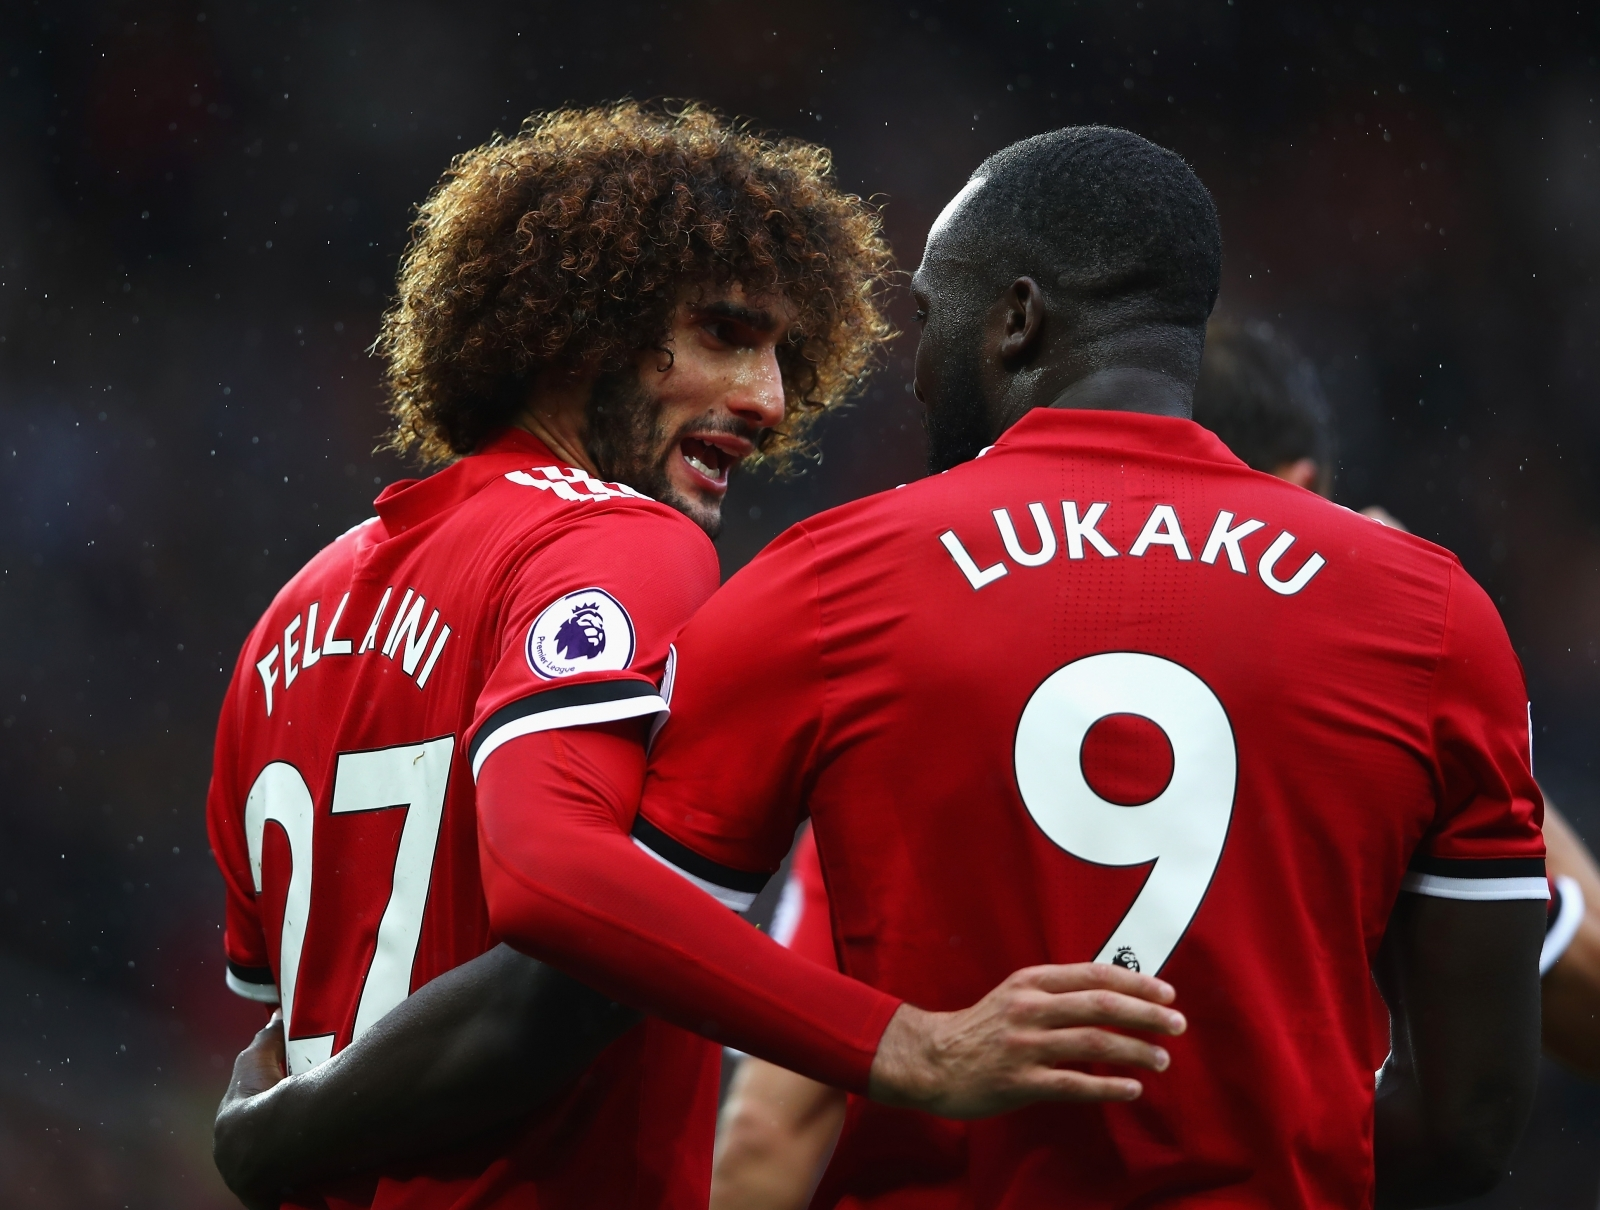 Romelu Lukaku and Fellaini